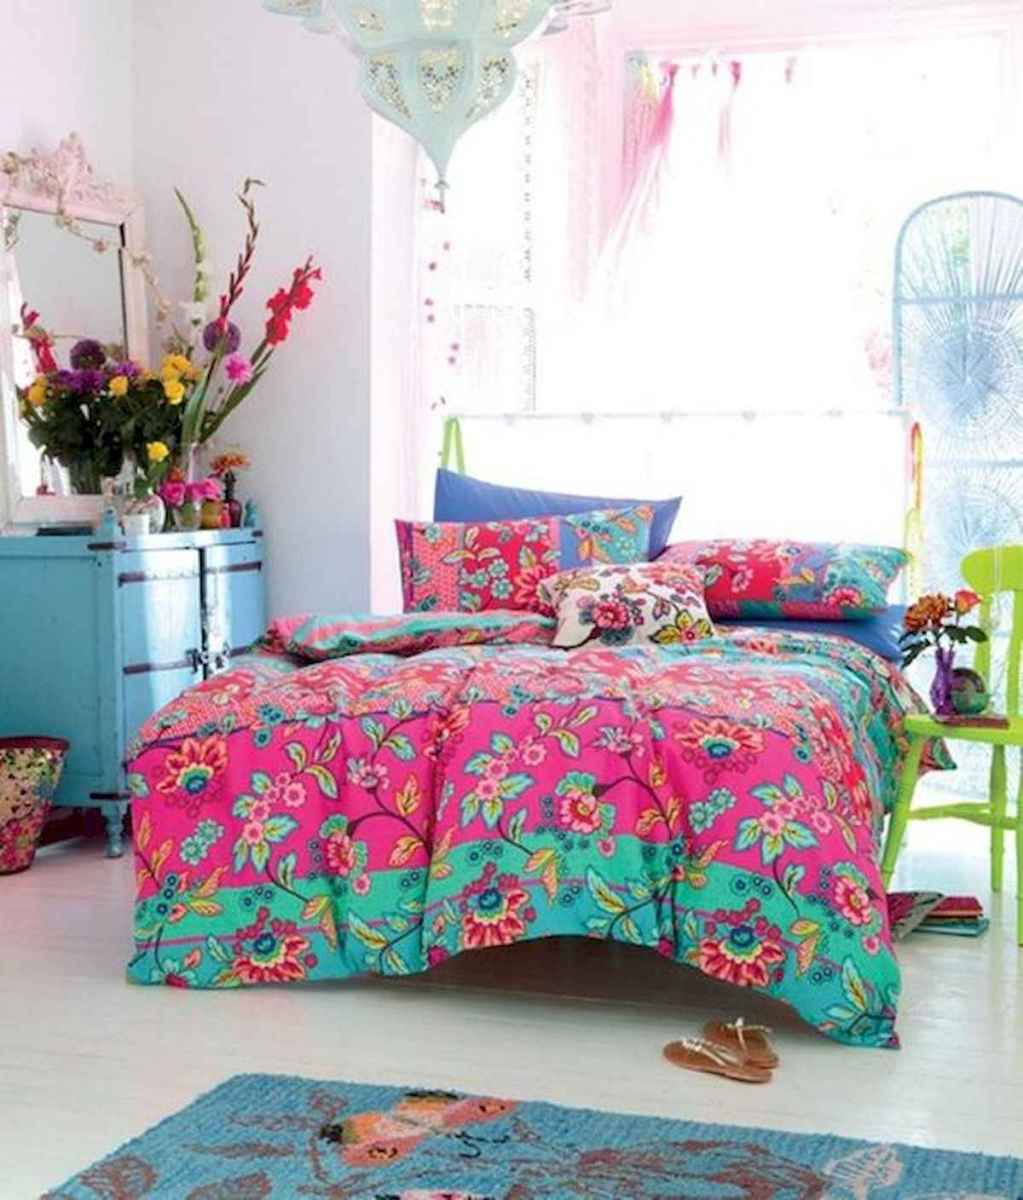 70+ Amazing Colorful Bedroom Decor Ideas And Remodel for Summer Project (5)